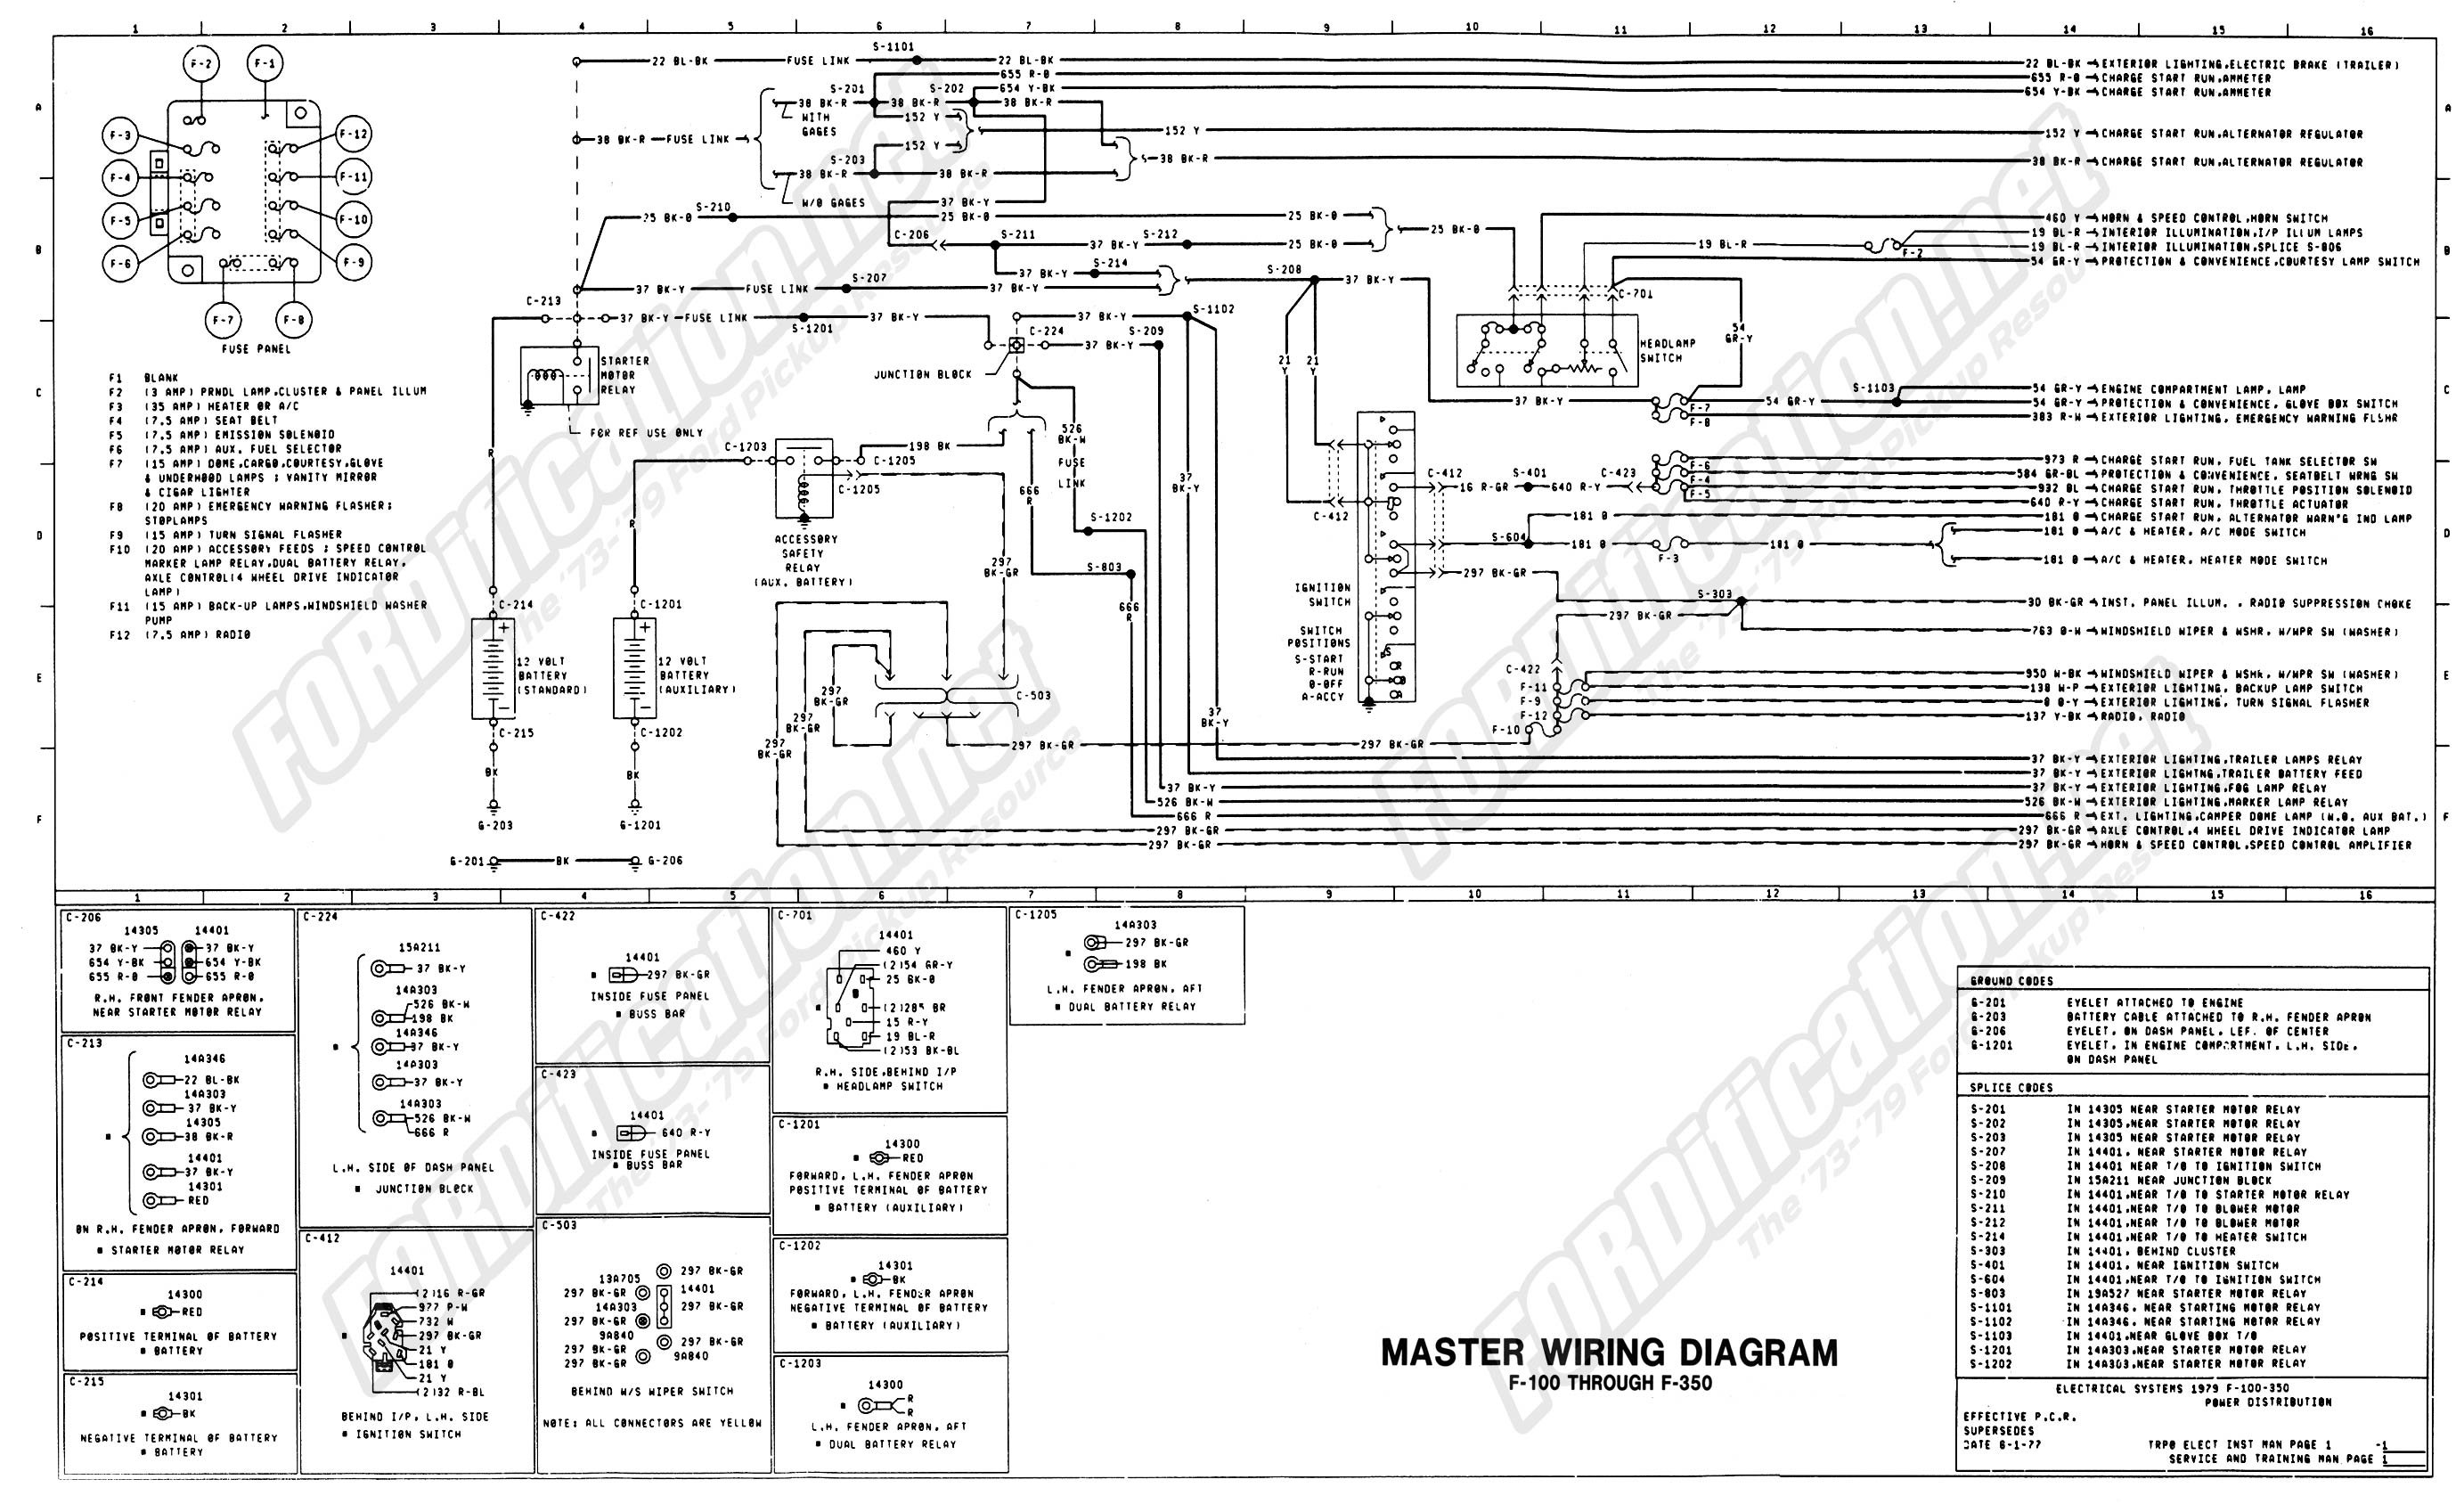 2004 ford f150 wiring diagram Download-wiring 79master 1of9 16-m